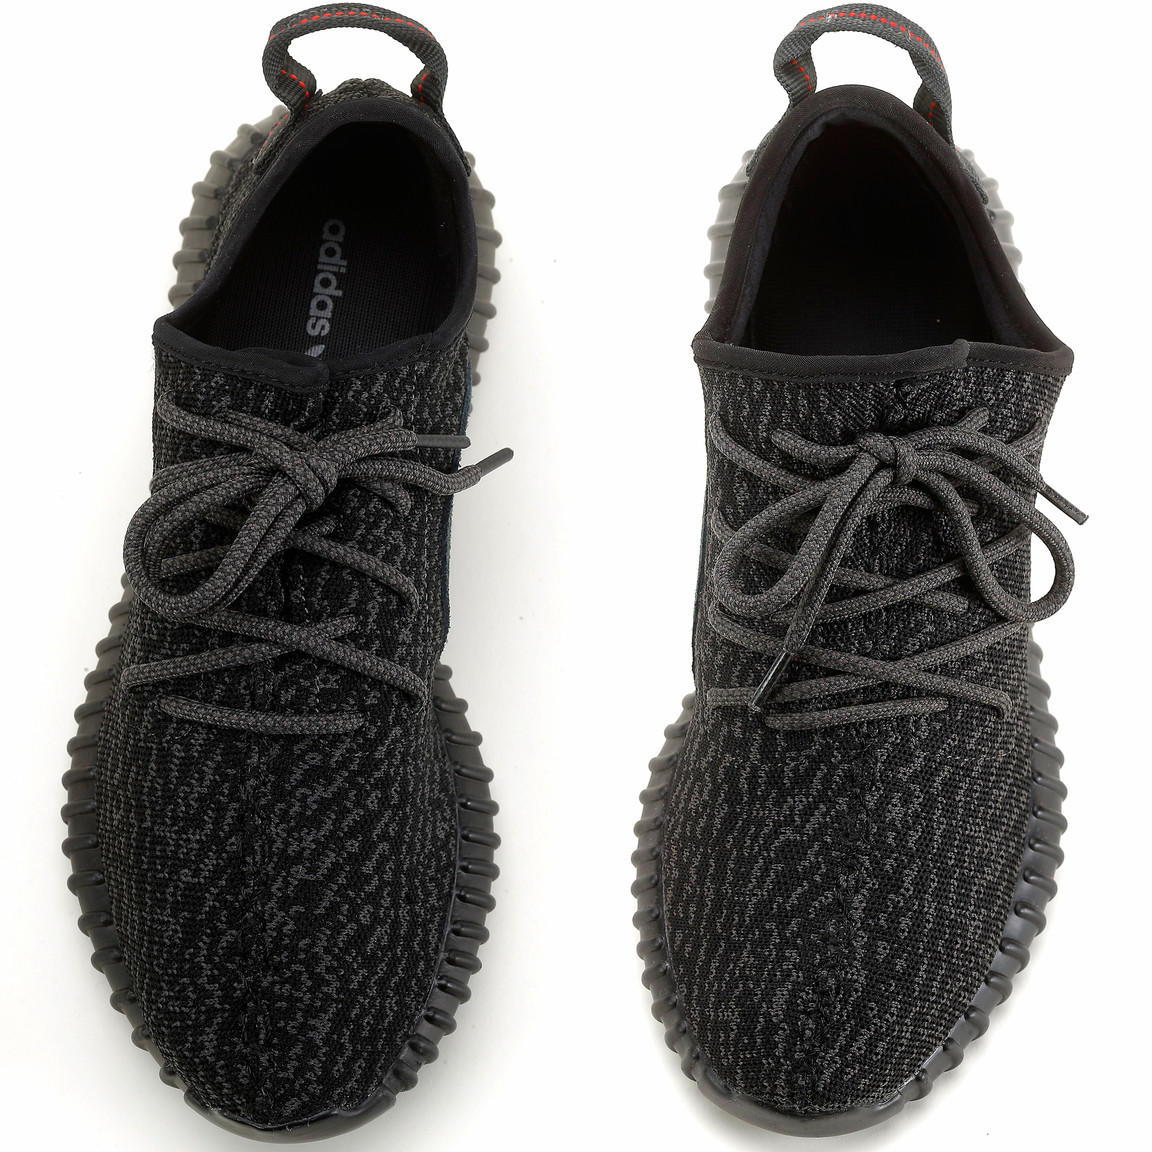 7d46252c5f9677 Counterfeit Yeezys and the booming sneaker black market - Los ...